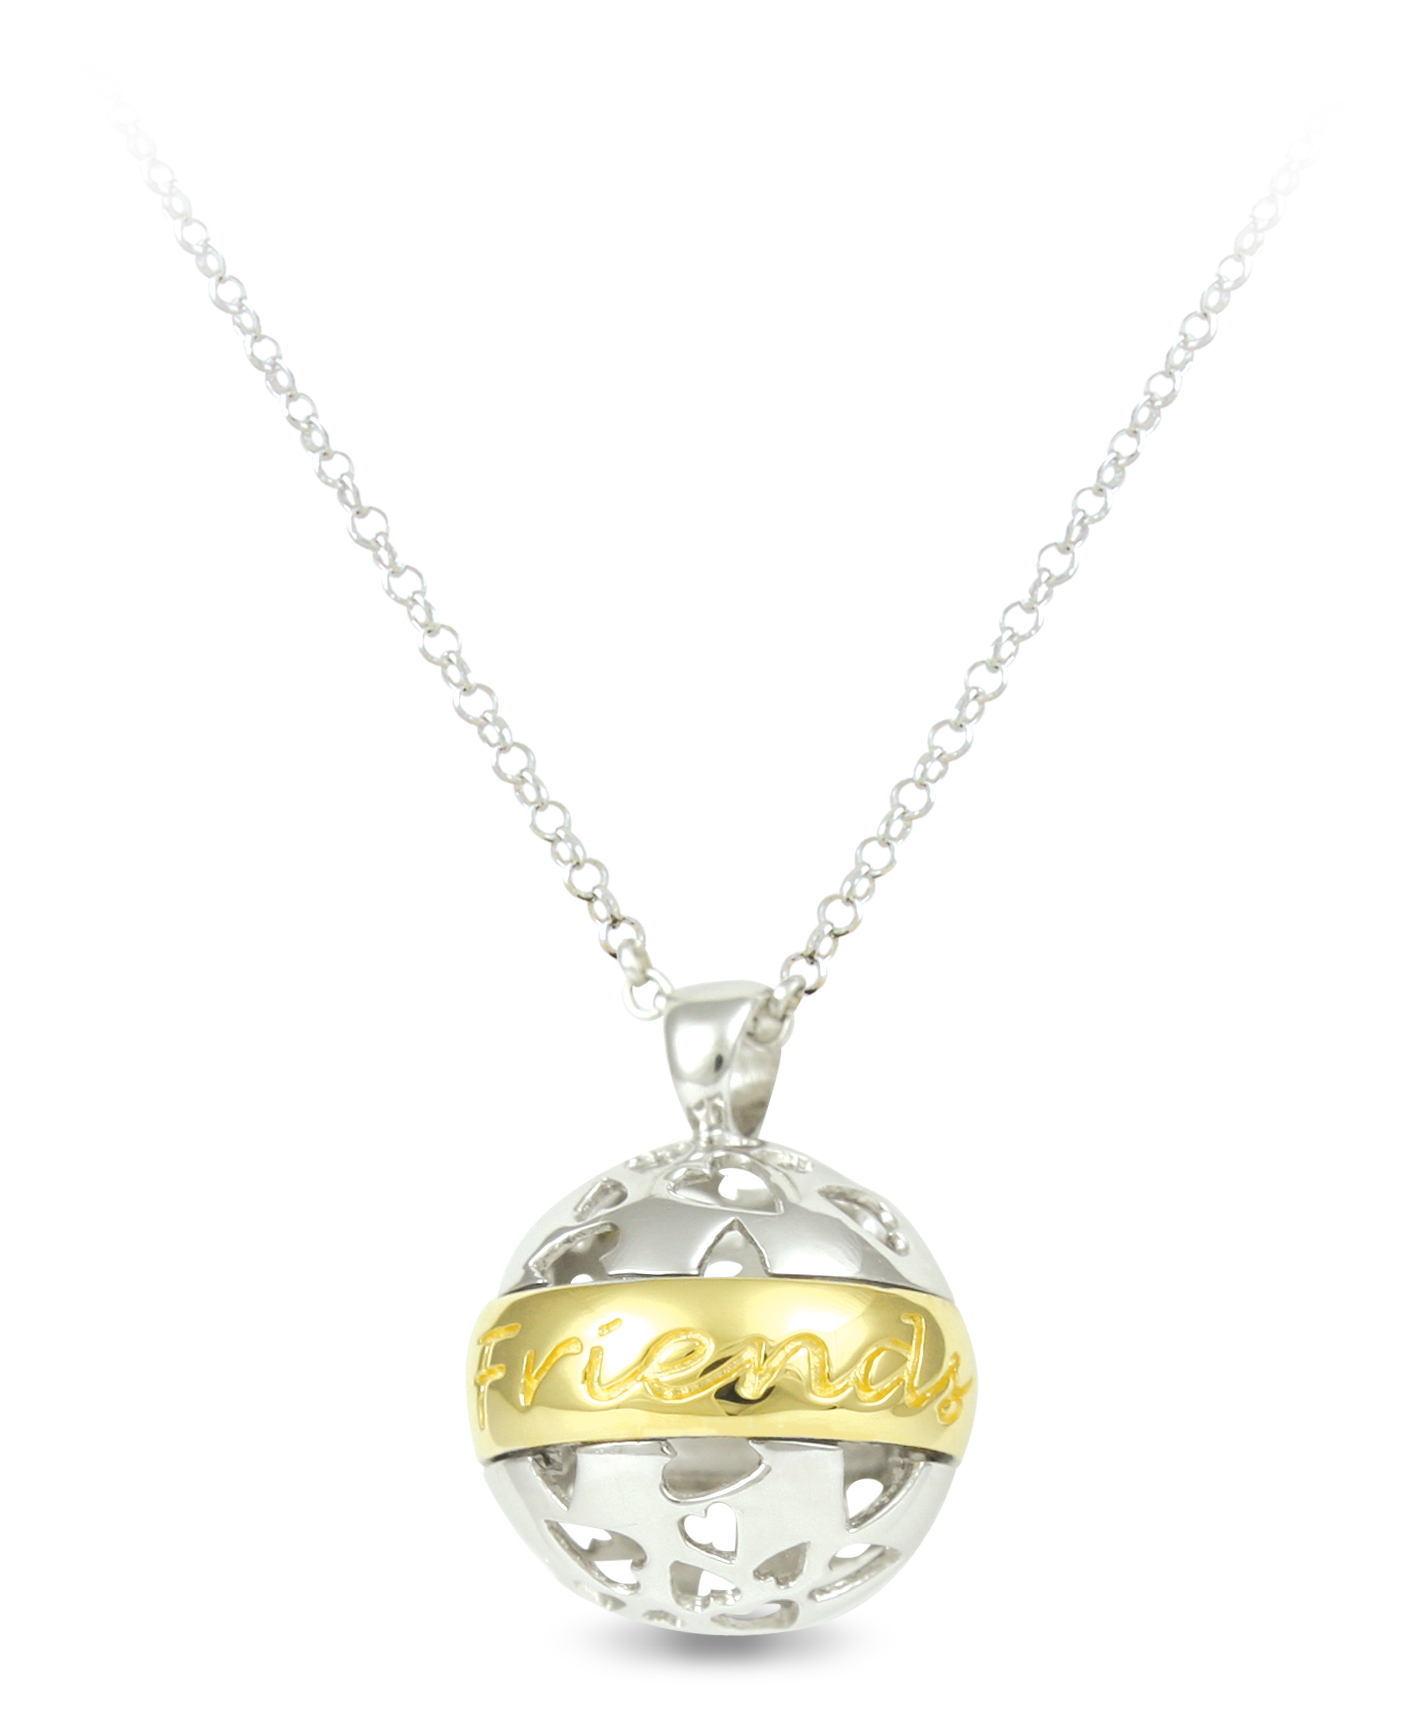 65703 - Sphere of Life 'Friends Forever' Pendant in Sterling Silver